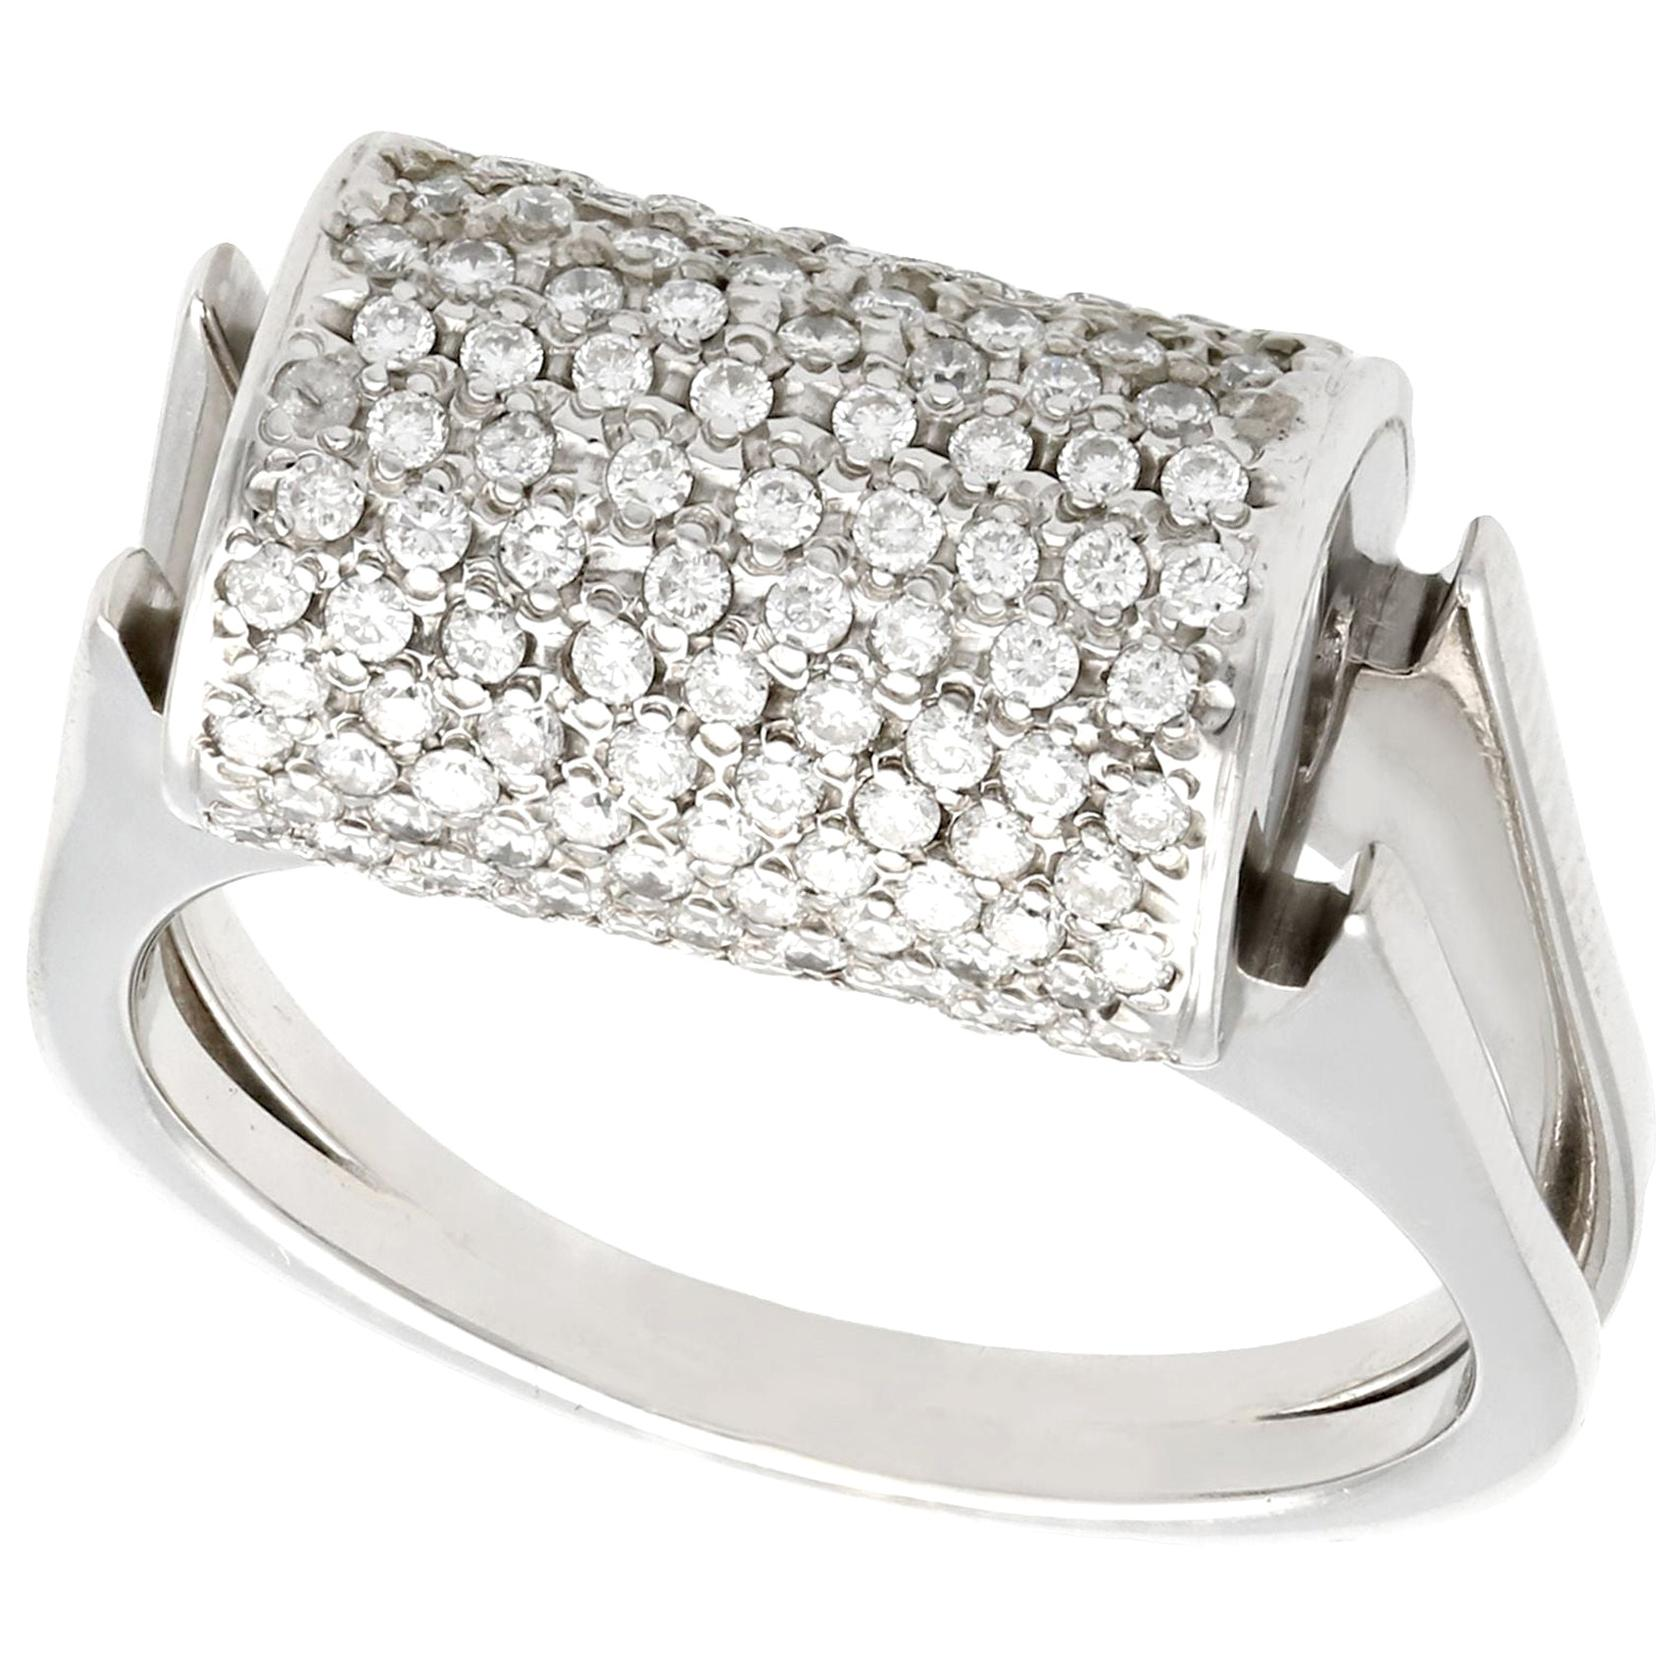 Vintage 1970s Diamond and White Gold Cocktail Ring